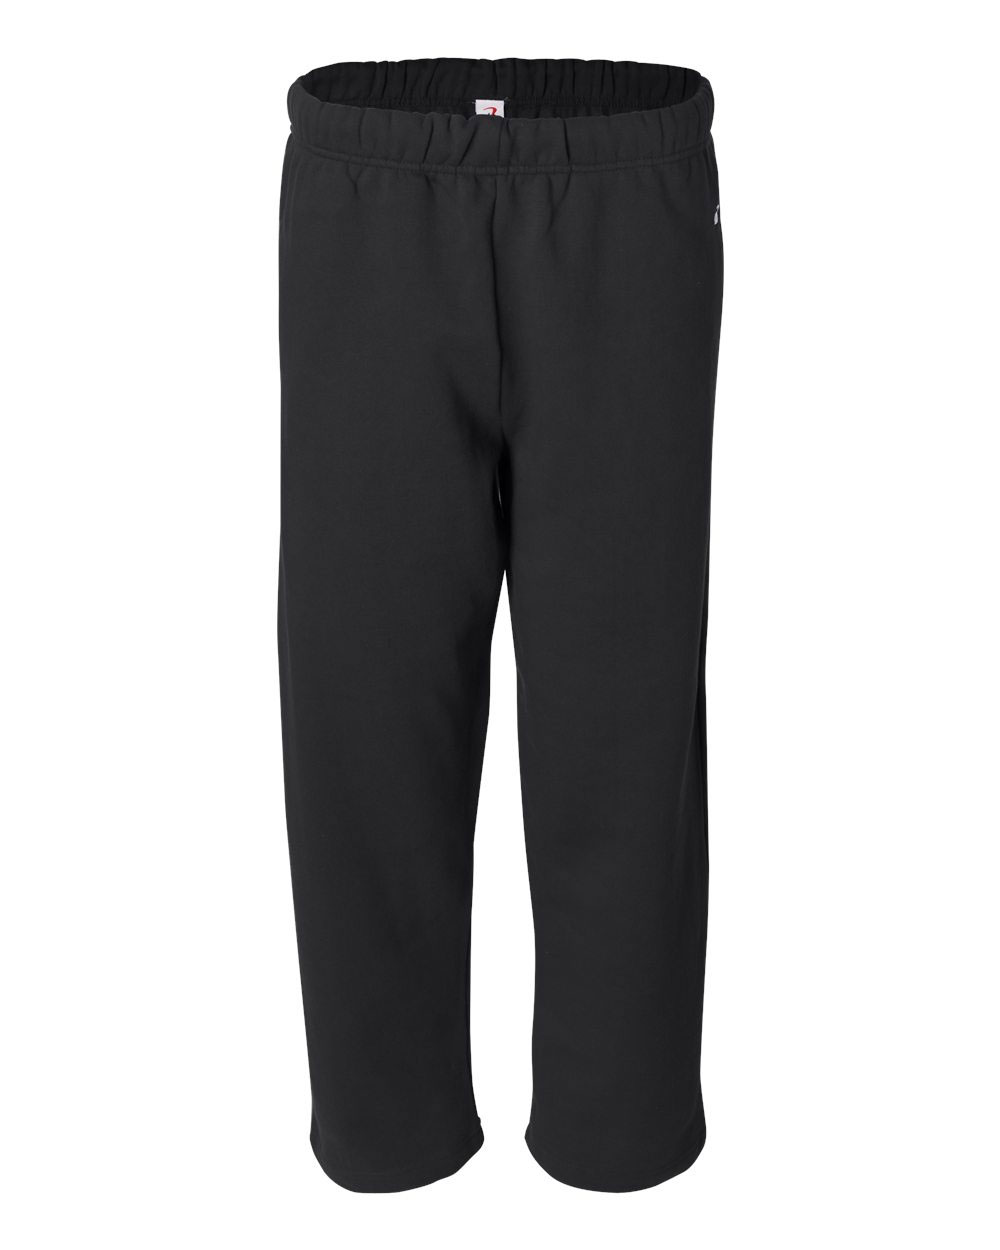 Adult Open Bottom Fleece Pant